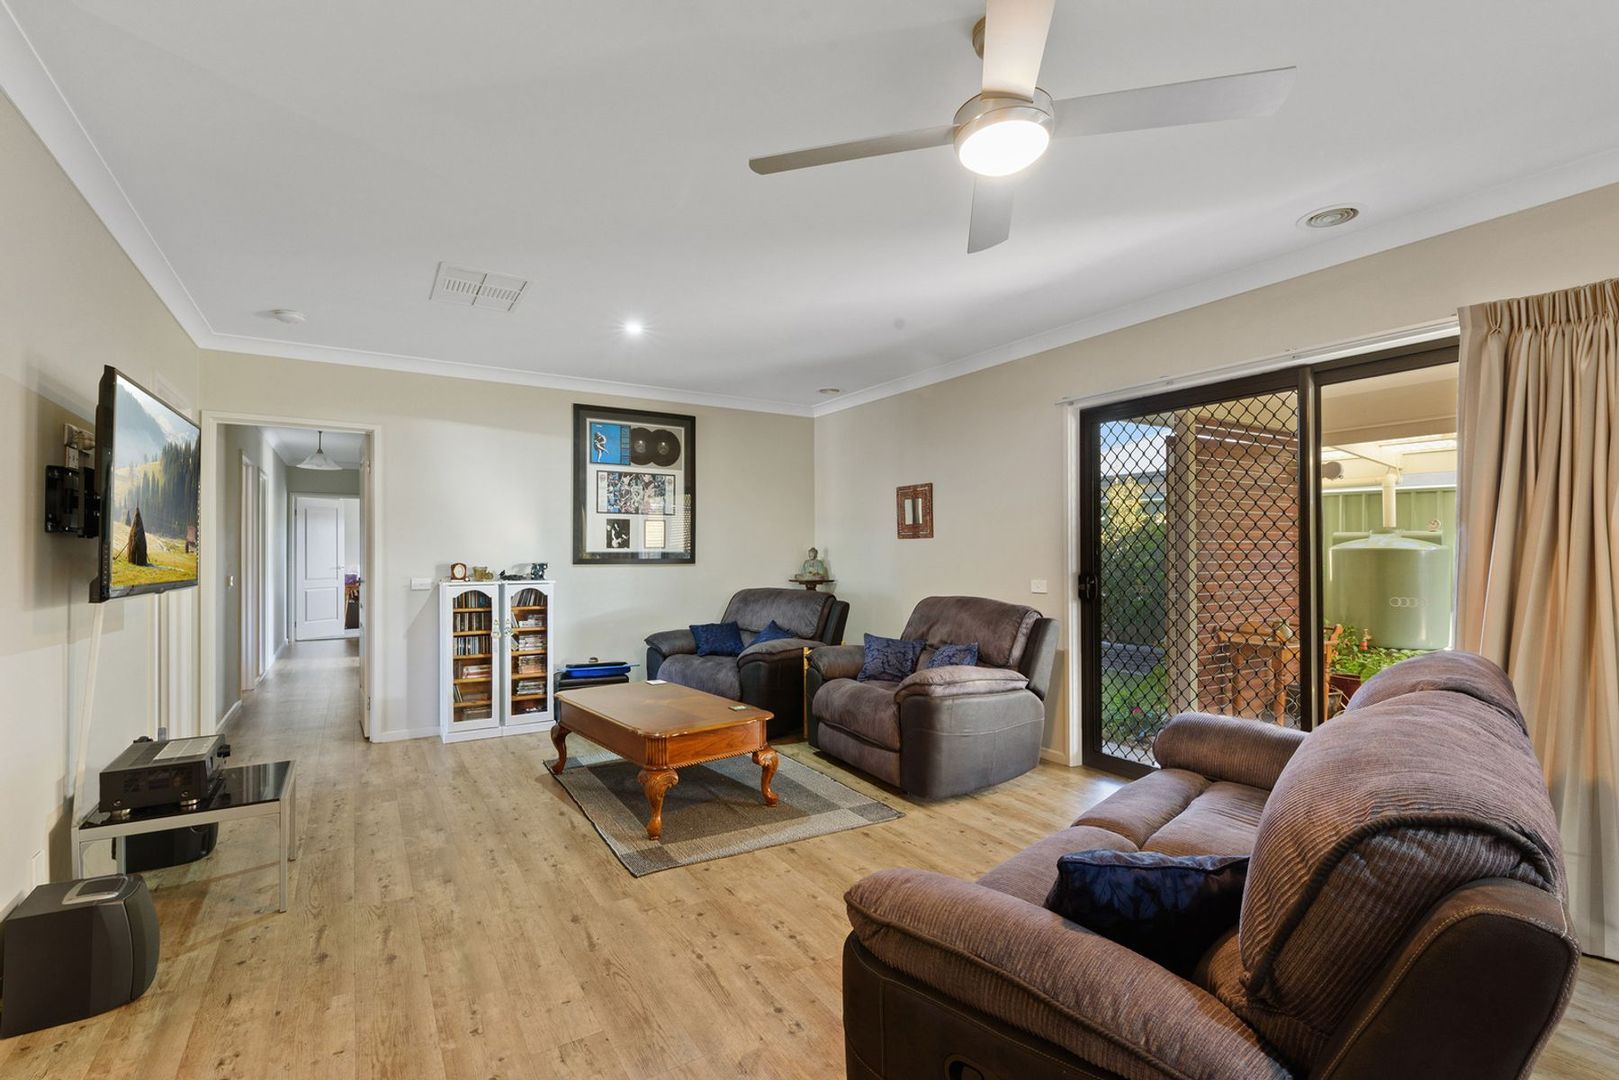 1 Juilette Court, Maiden Gully VIC 3551, Image 1